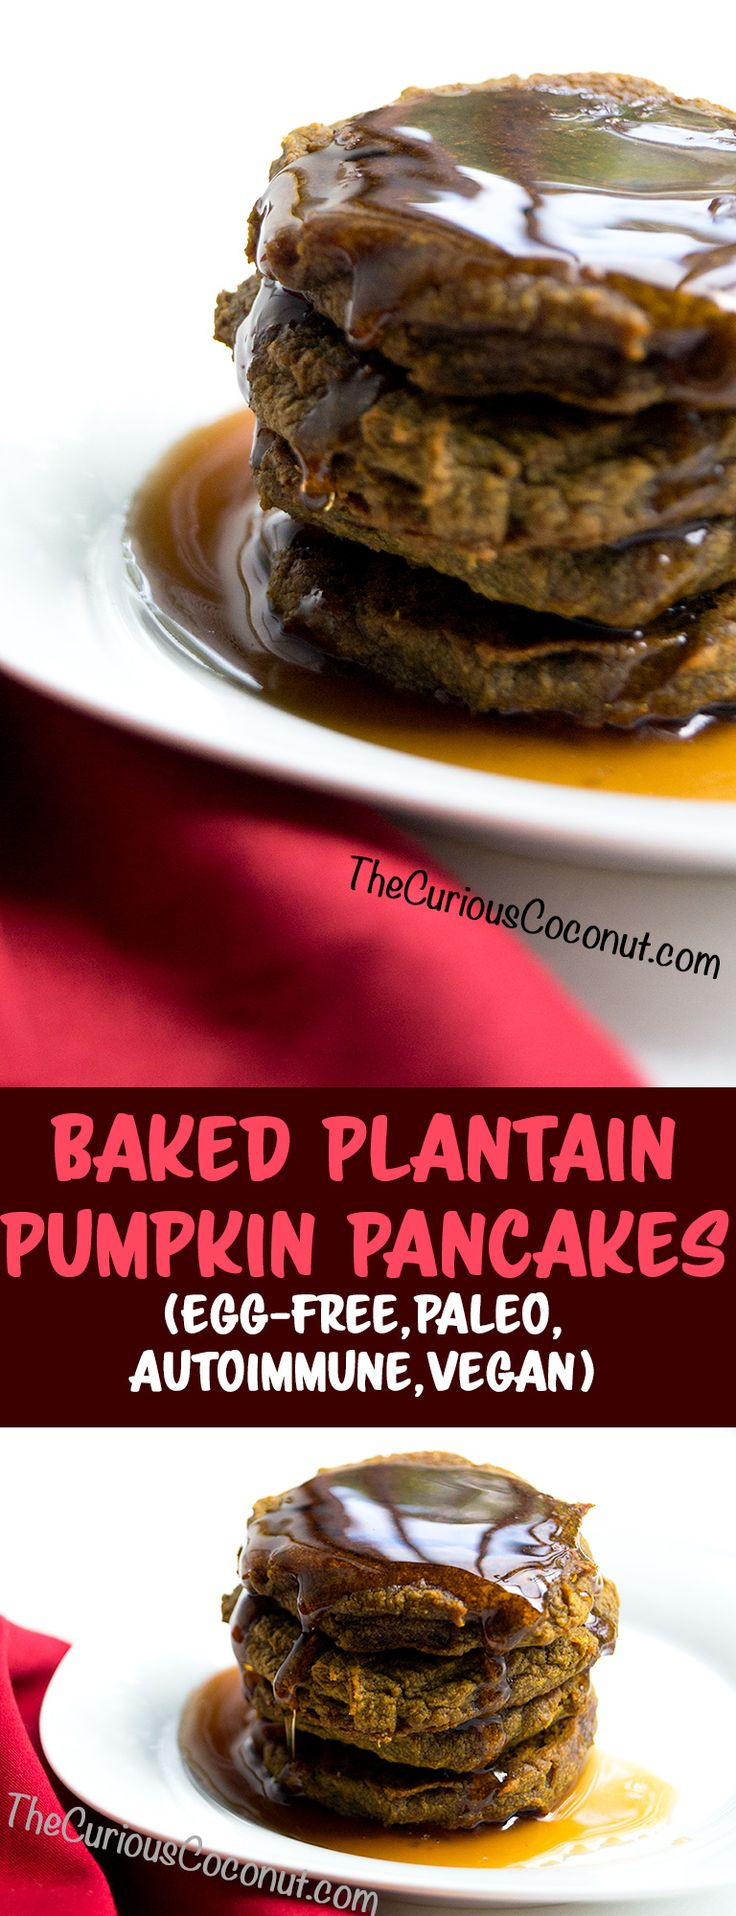 5 Ingredient Baked Plantain Pumpkin Pancakes (AIP, Paleo, Egg-Free, Vegan, Sugar-Free)